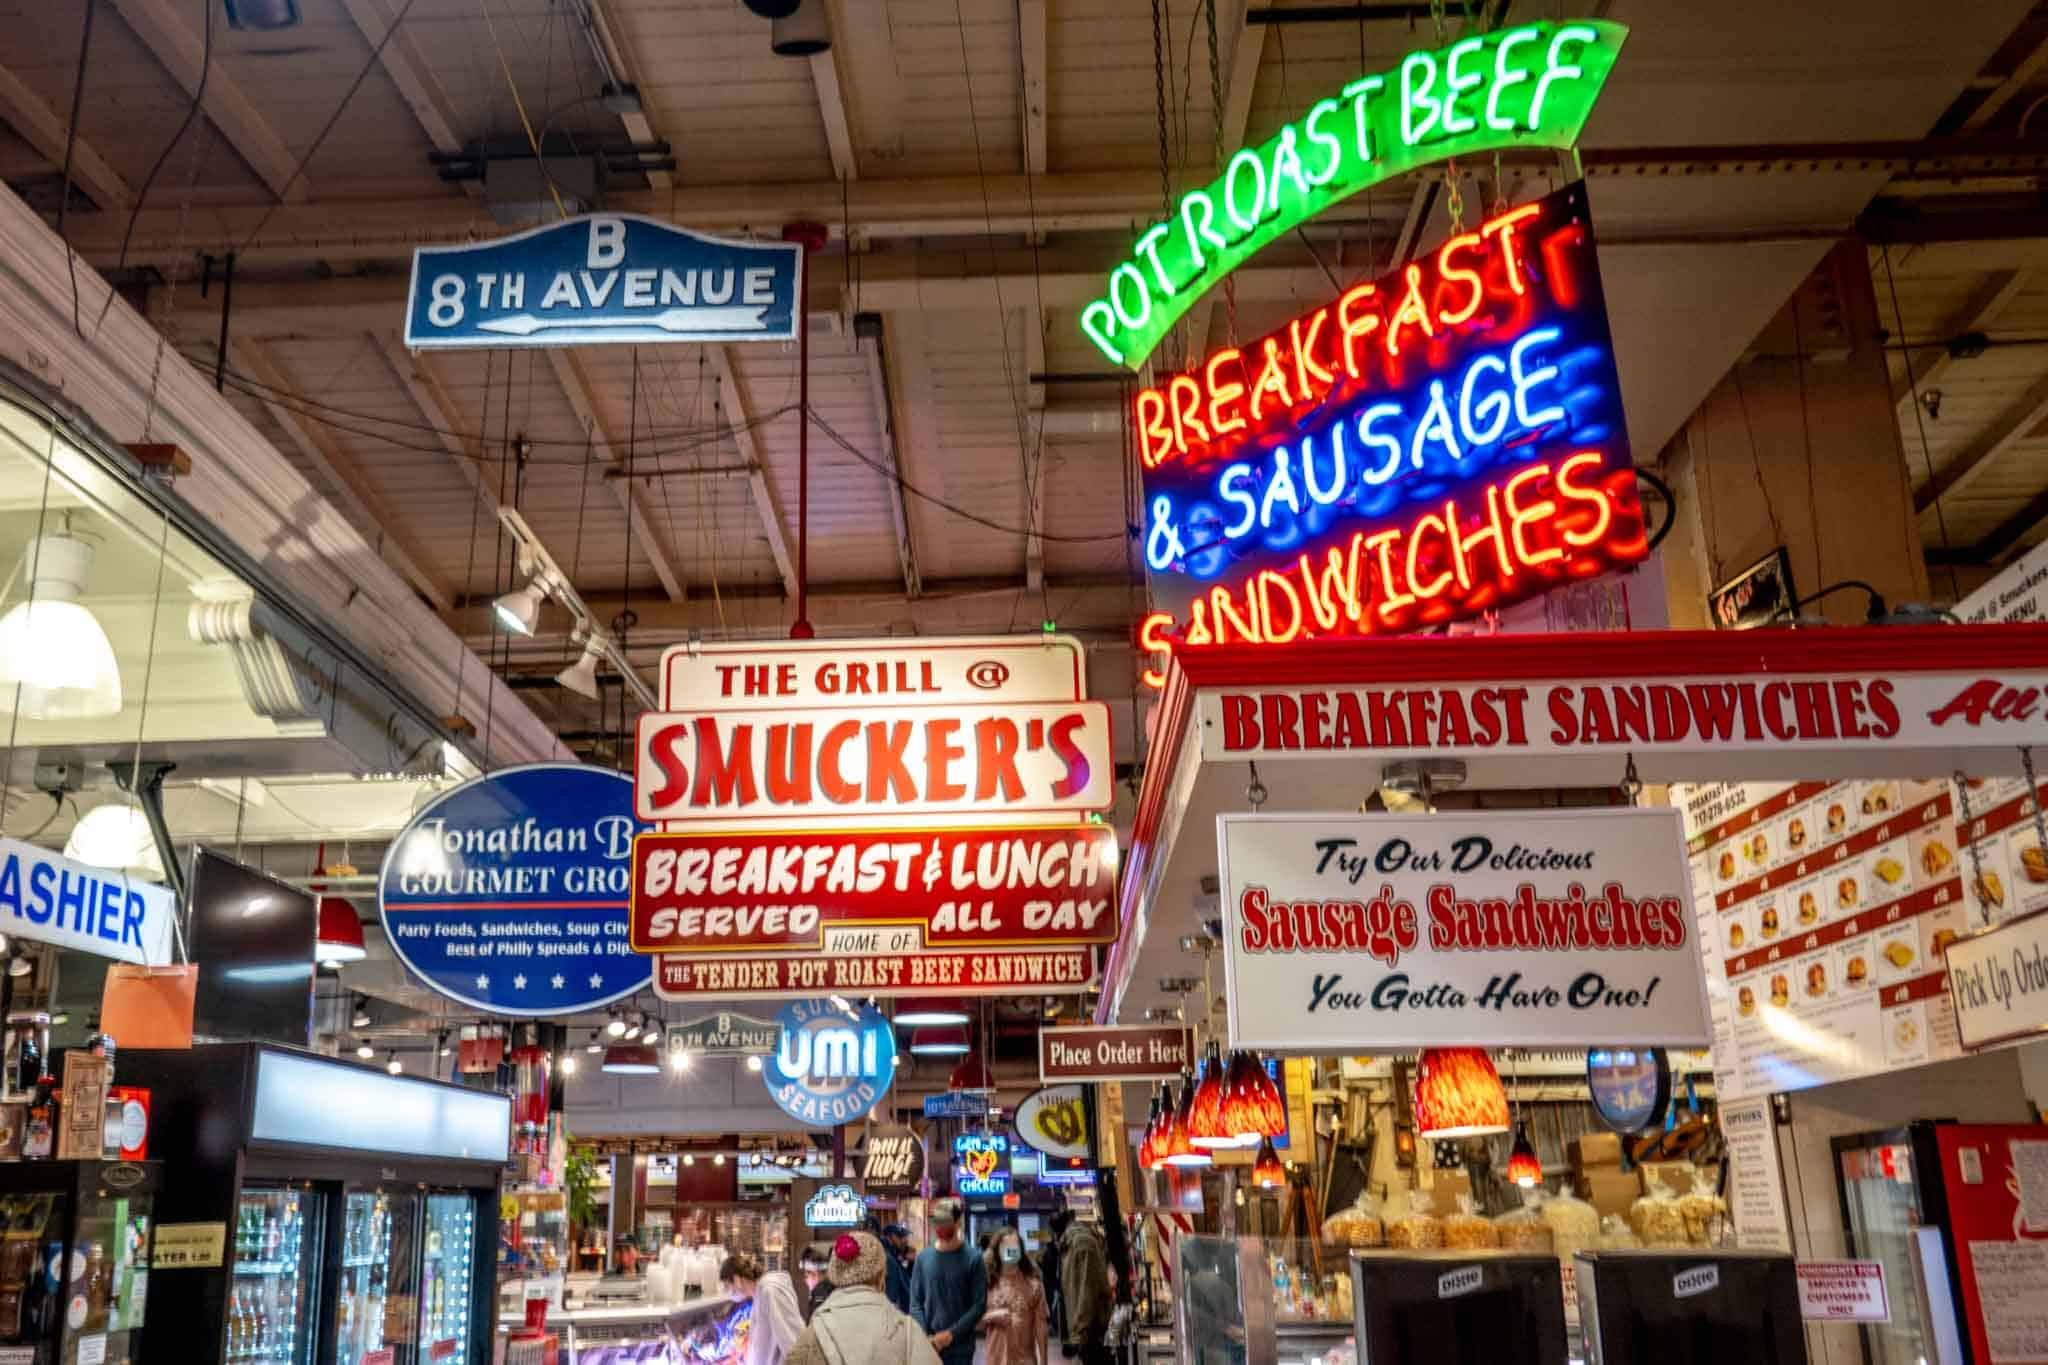 Signs for businesses in a food market